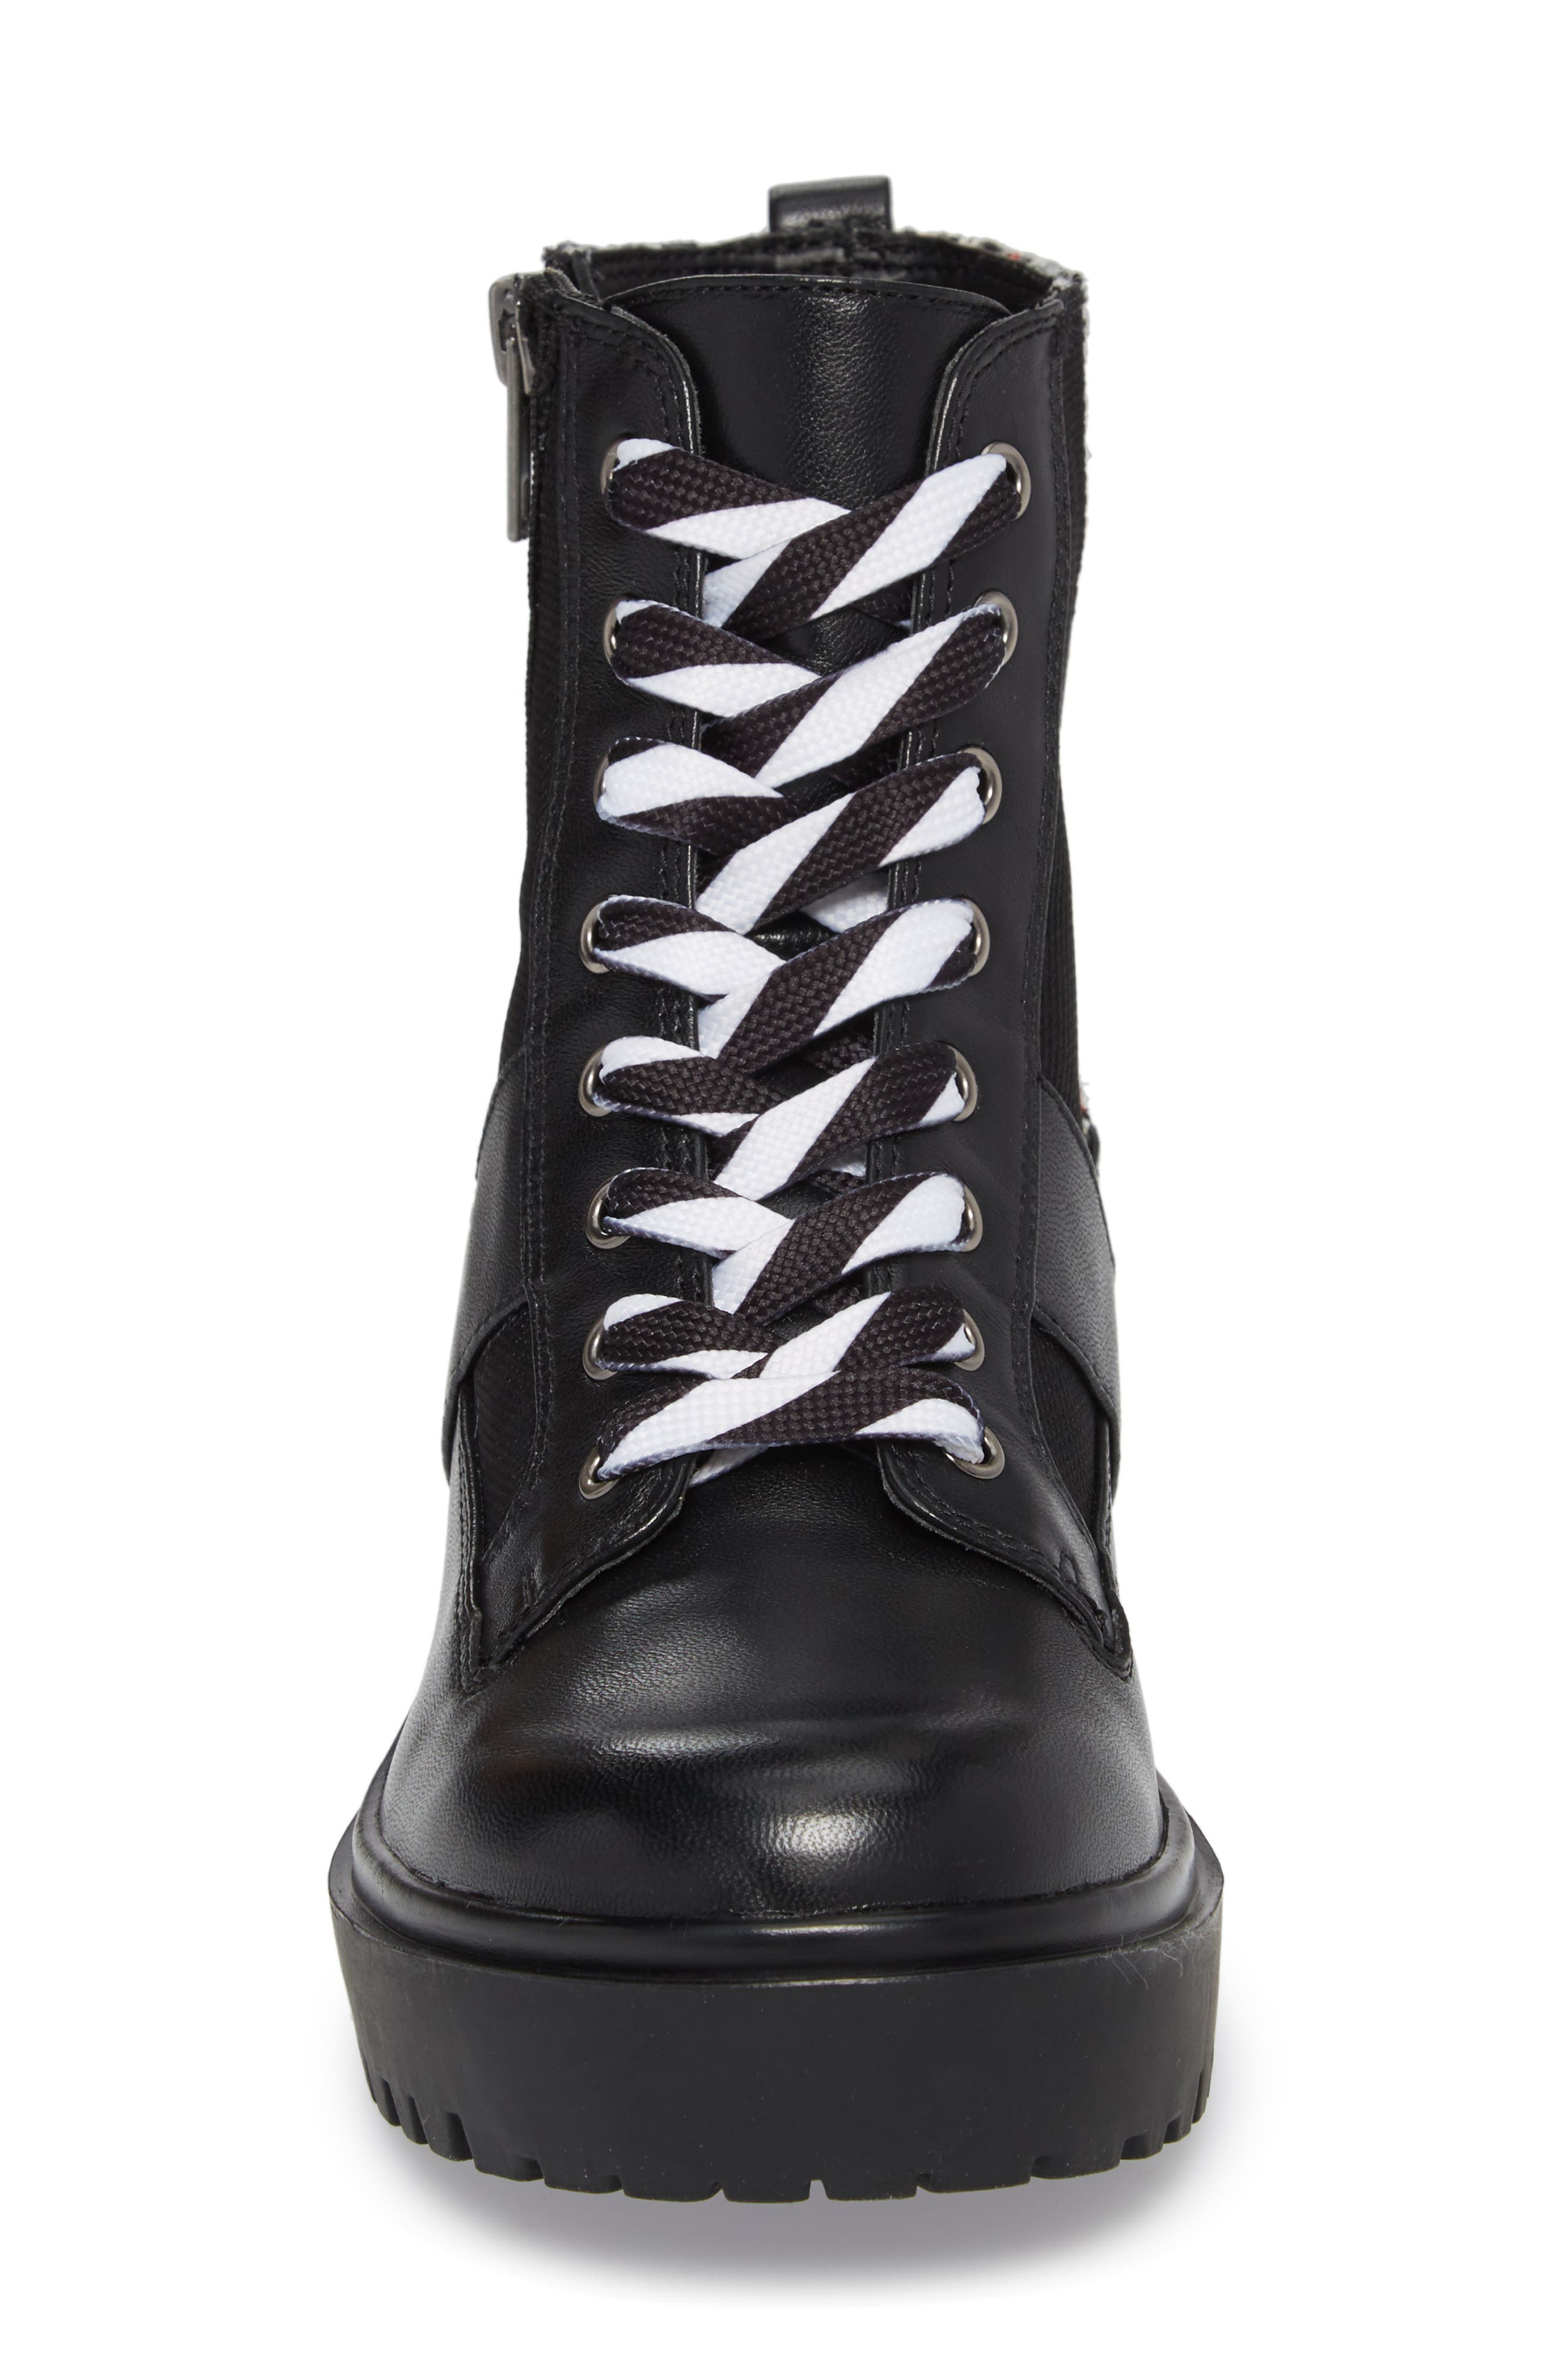 Lennox Combat Boot,                             Alternate thumbnail 4, color,                             Black Multi